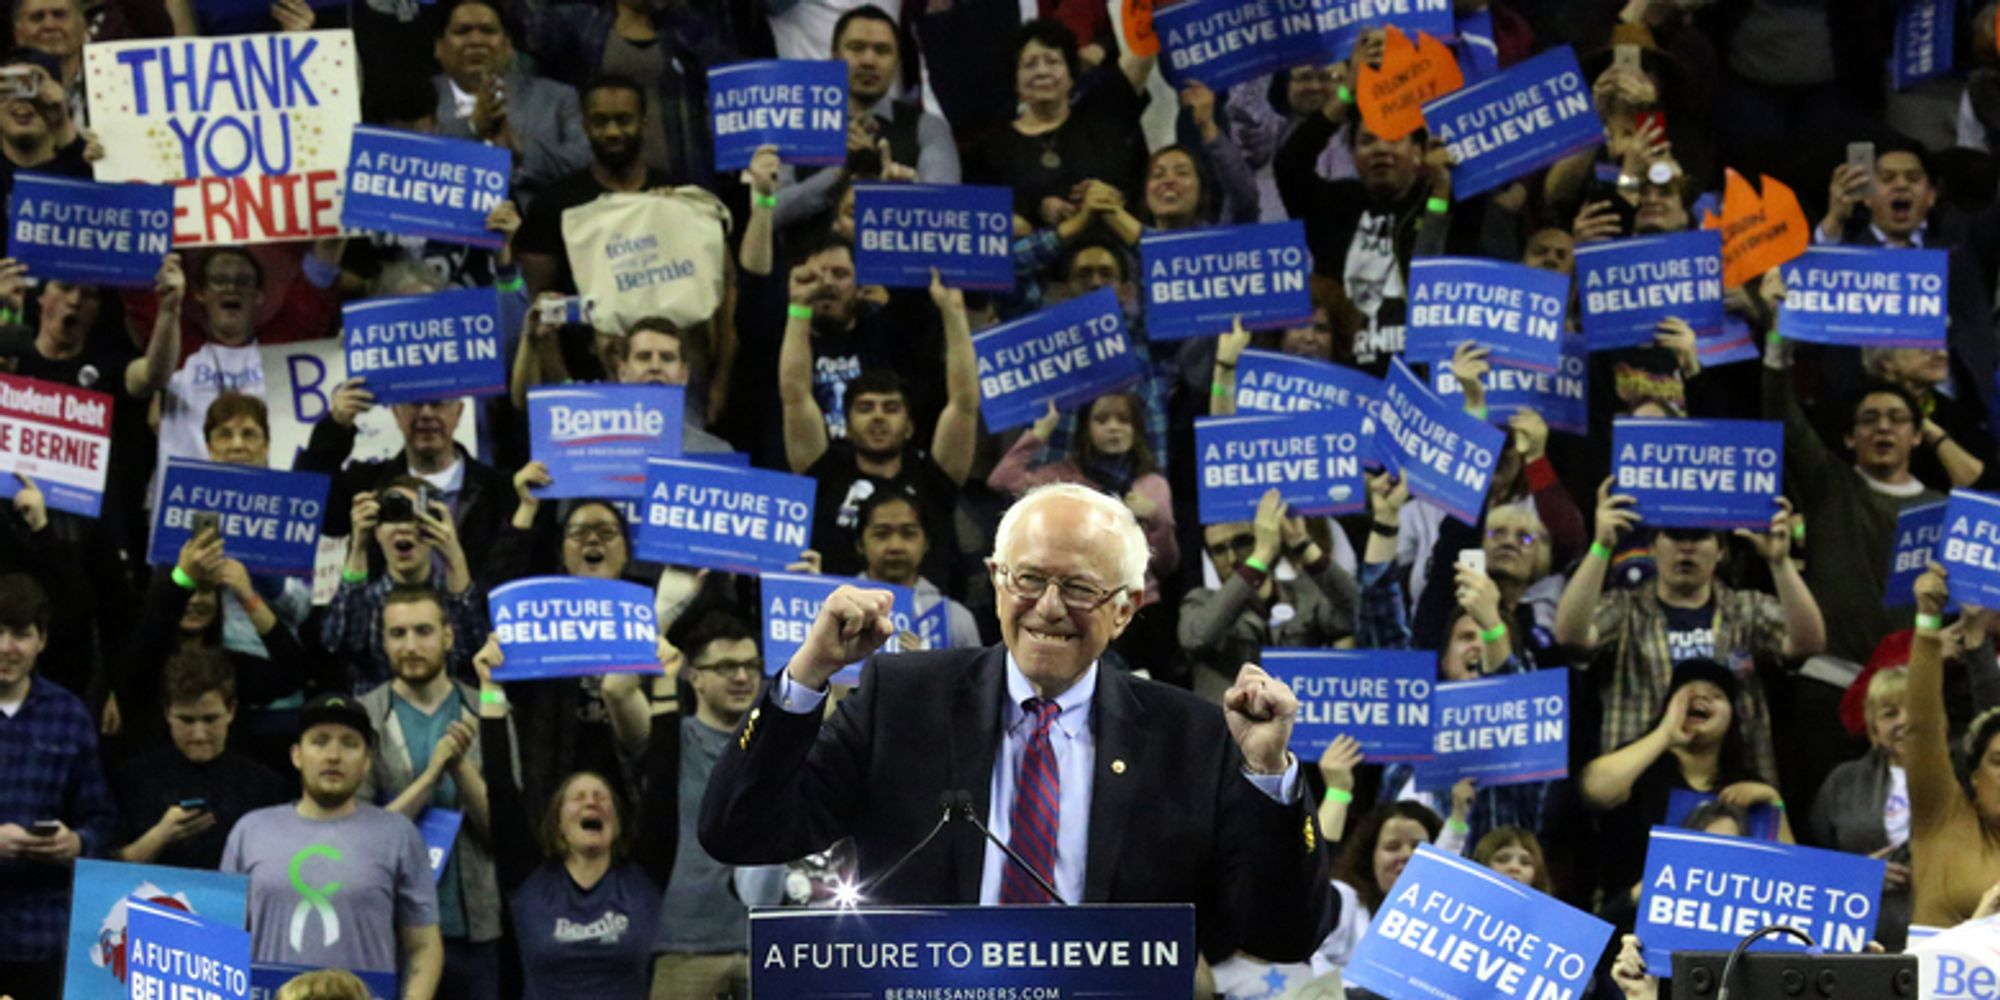 Bernie Sanders Should Have Been America's 45th President. Democrats Elevated Trump and Cheated Bernie